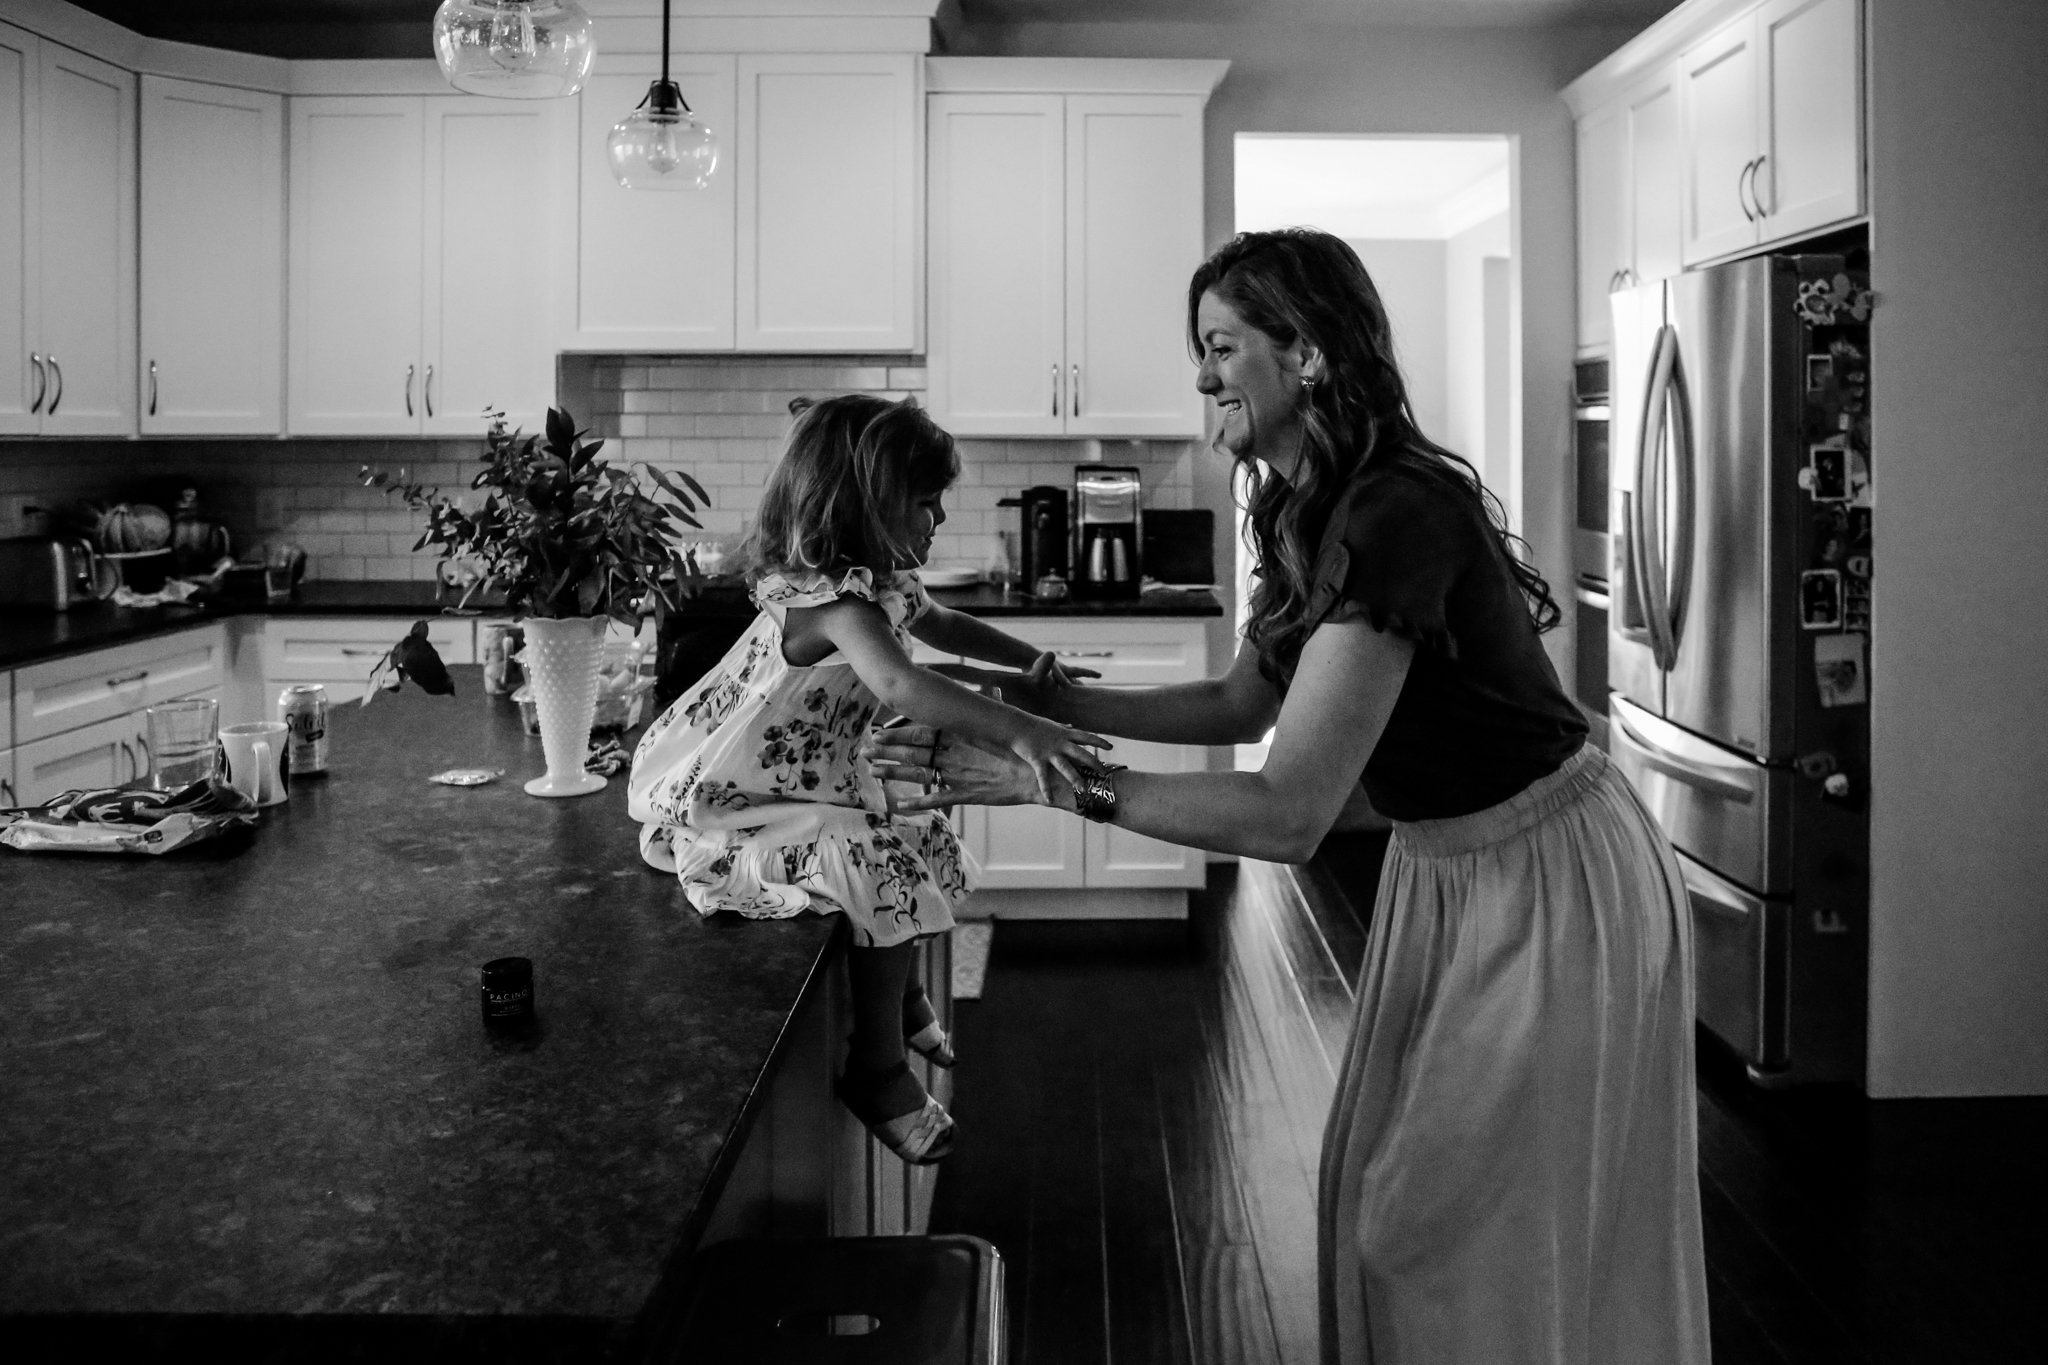 Daughter jumping off the counter into her mother's arms in the kitchen at their home in Coopersburg, PA.